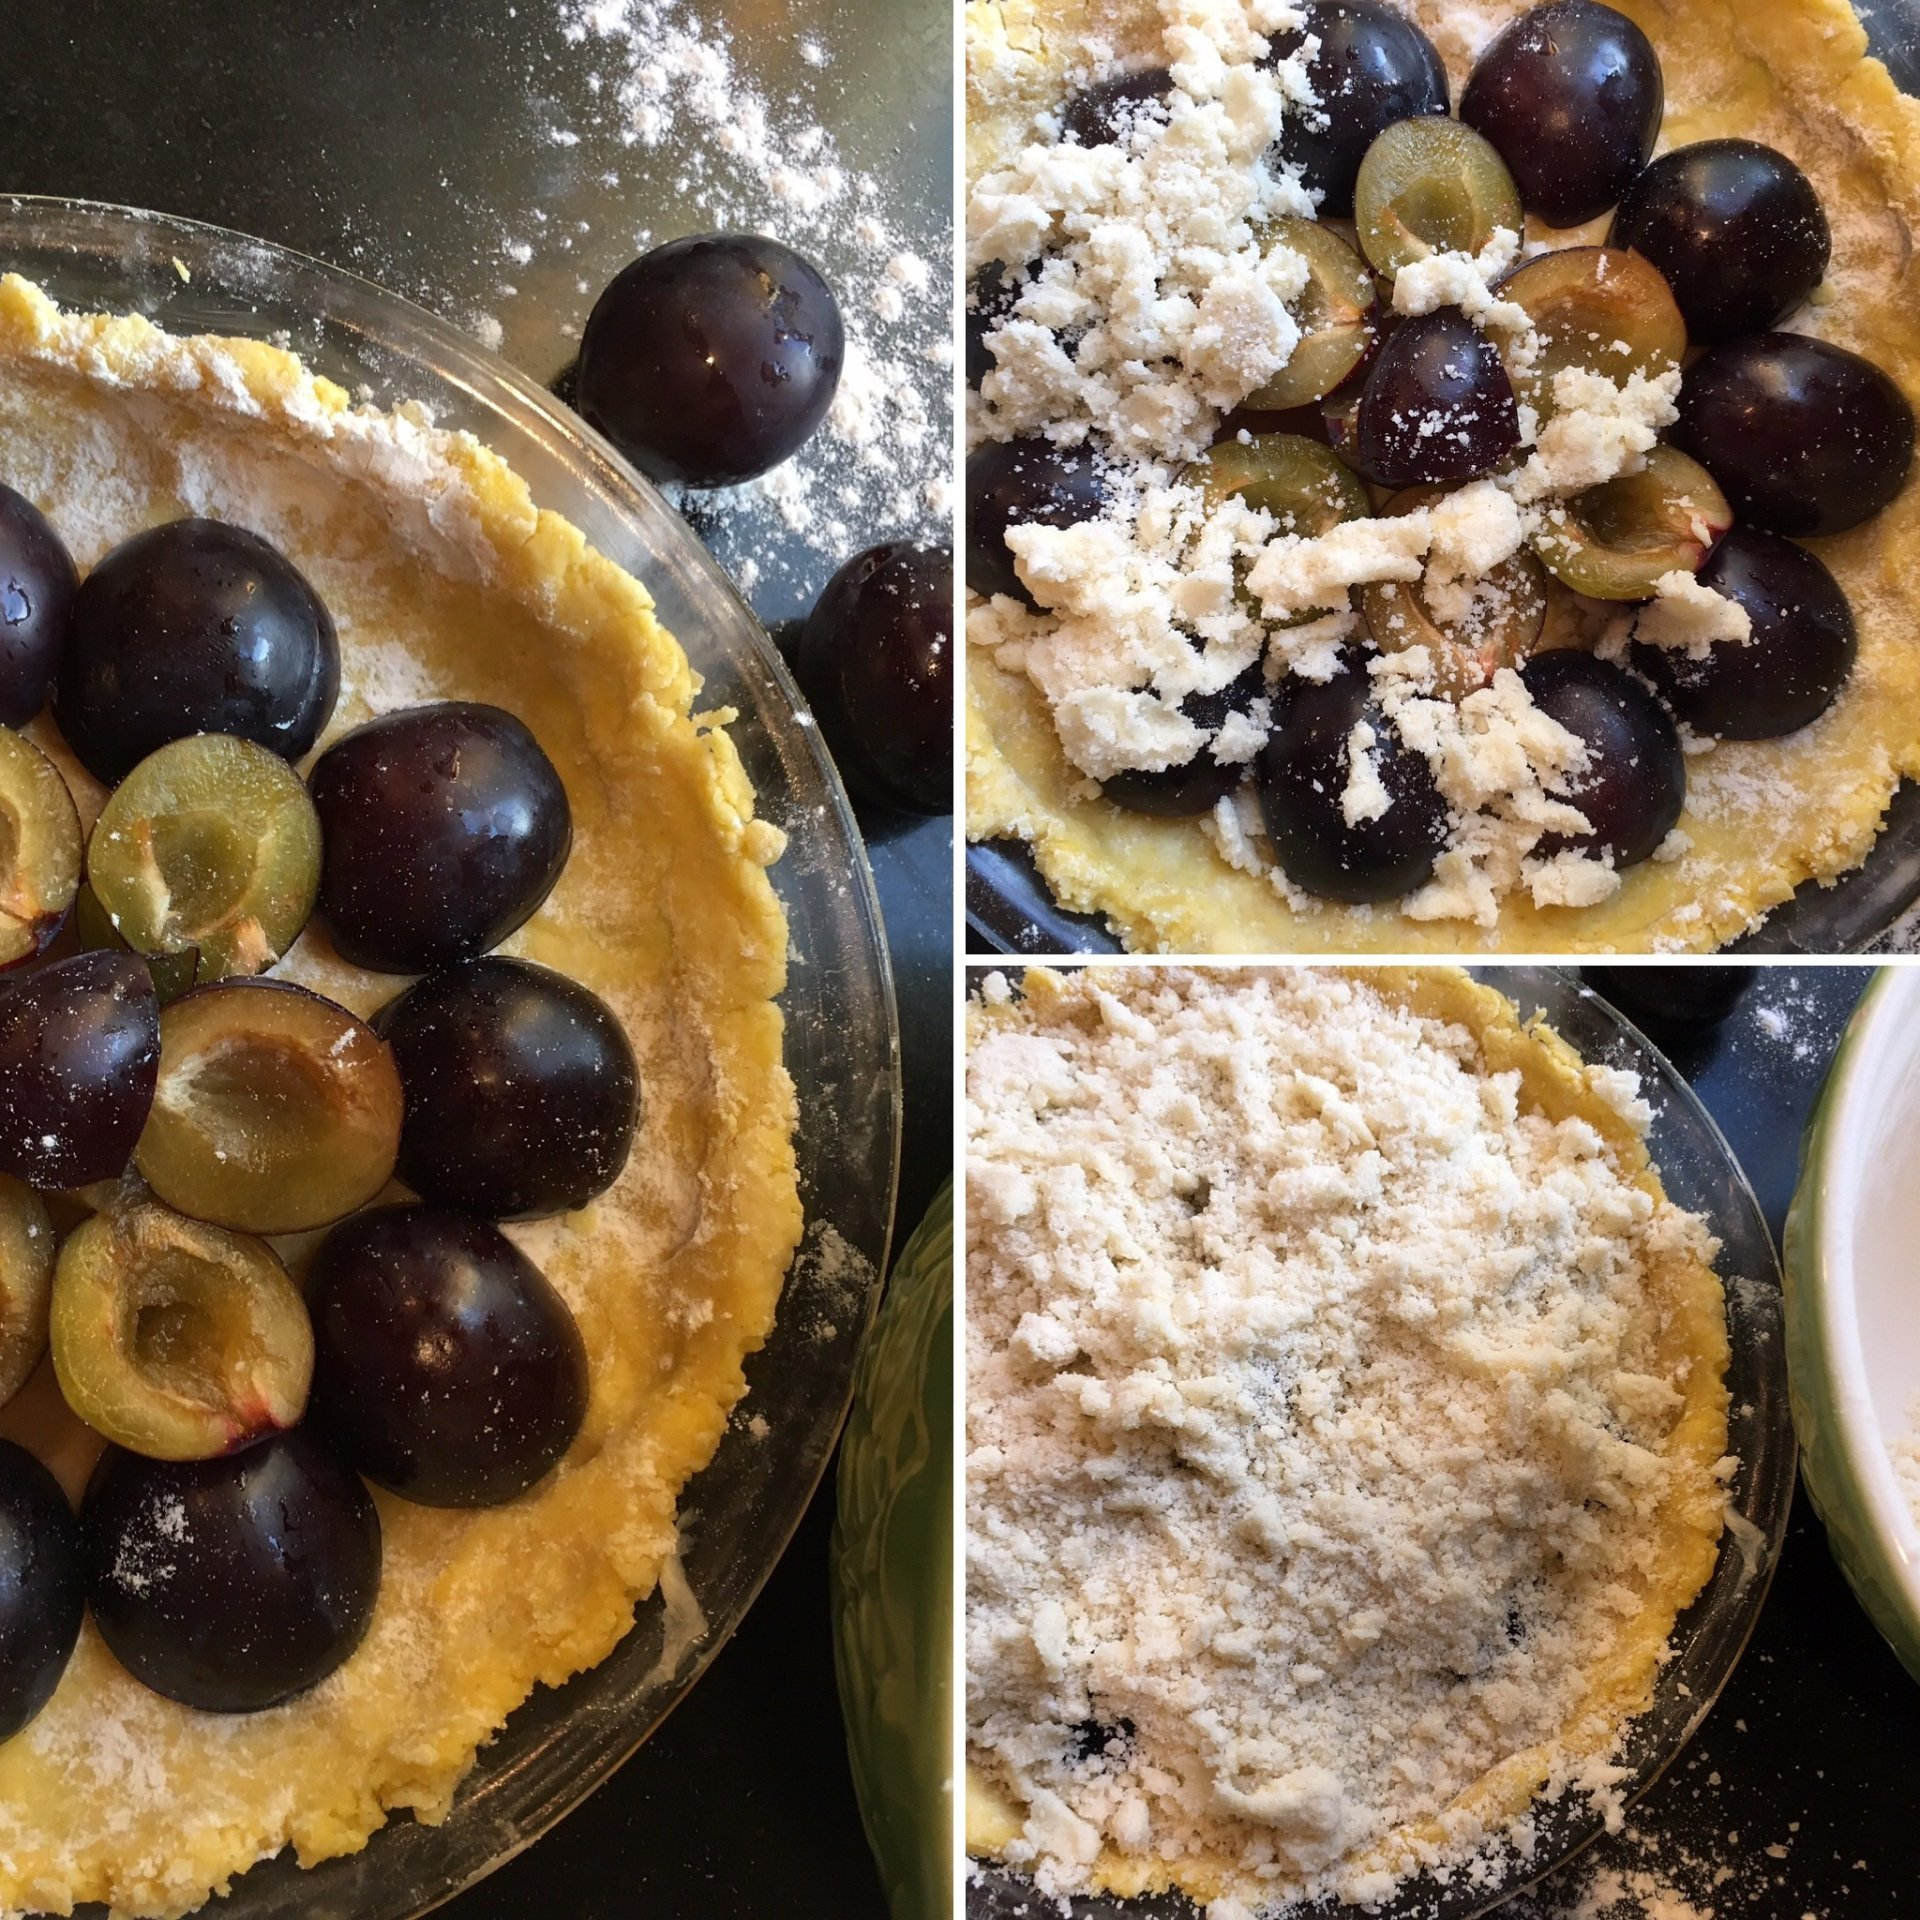 Plum Kuchen with Streusel Topping